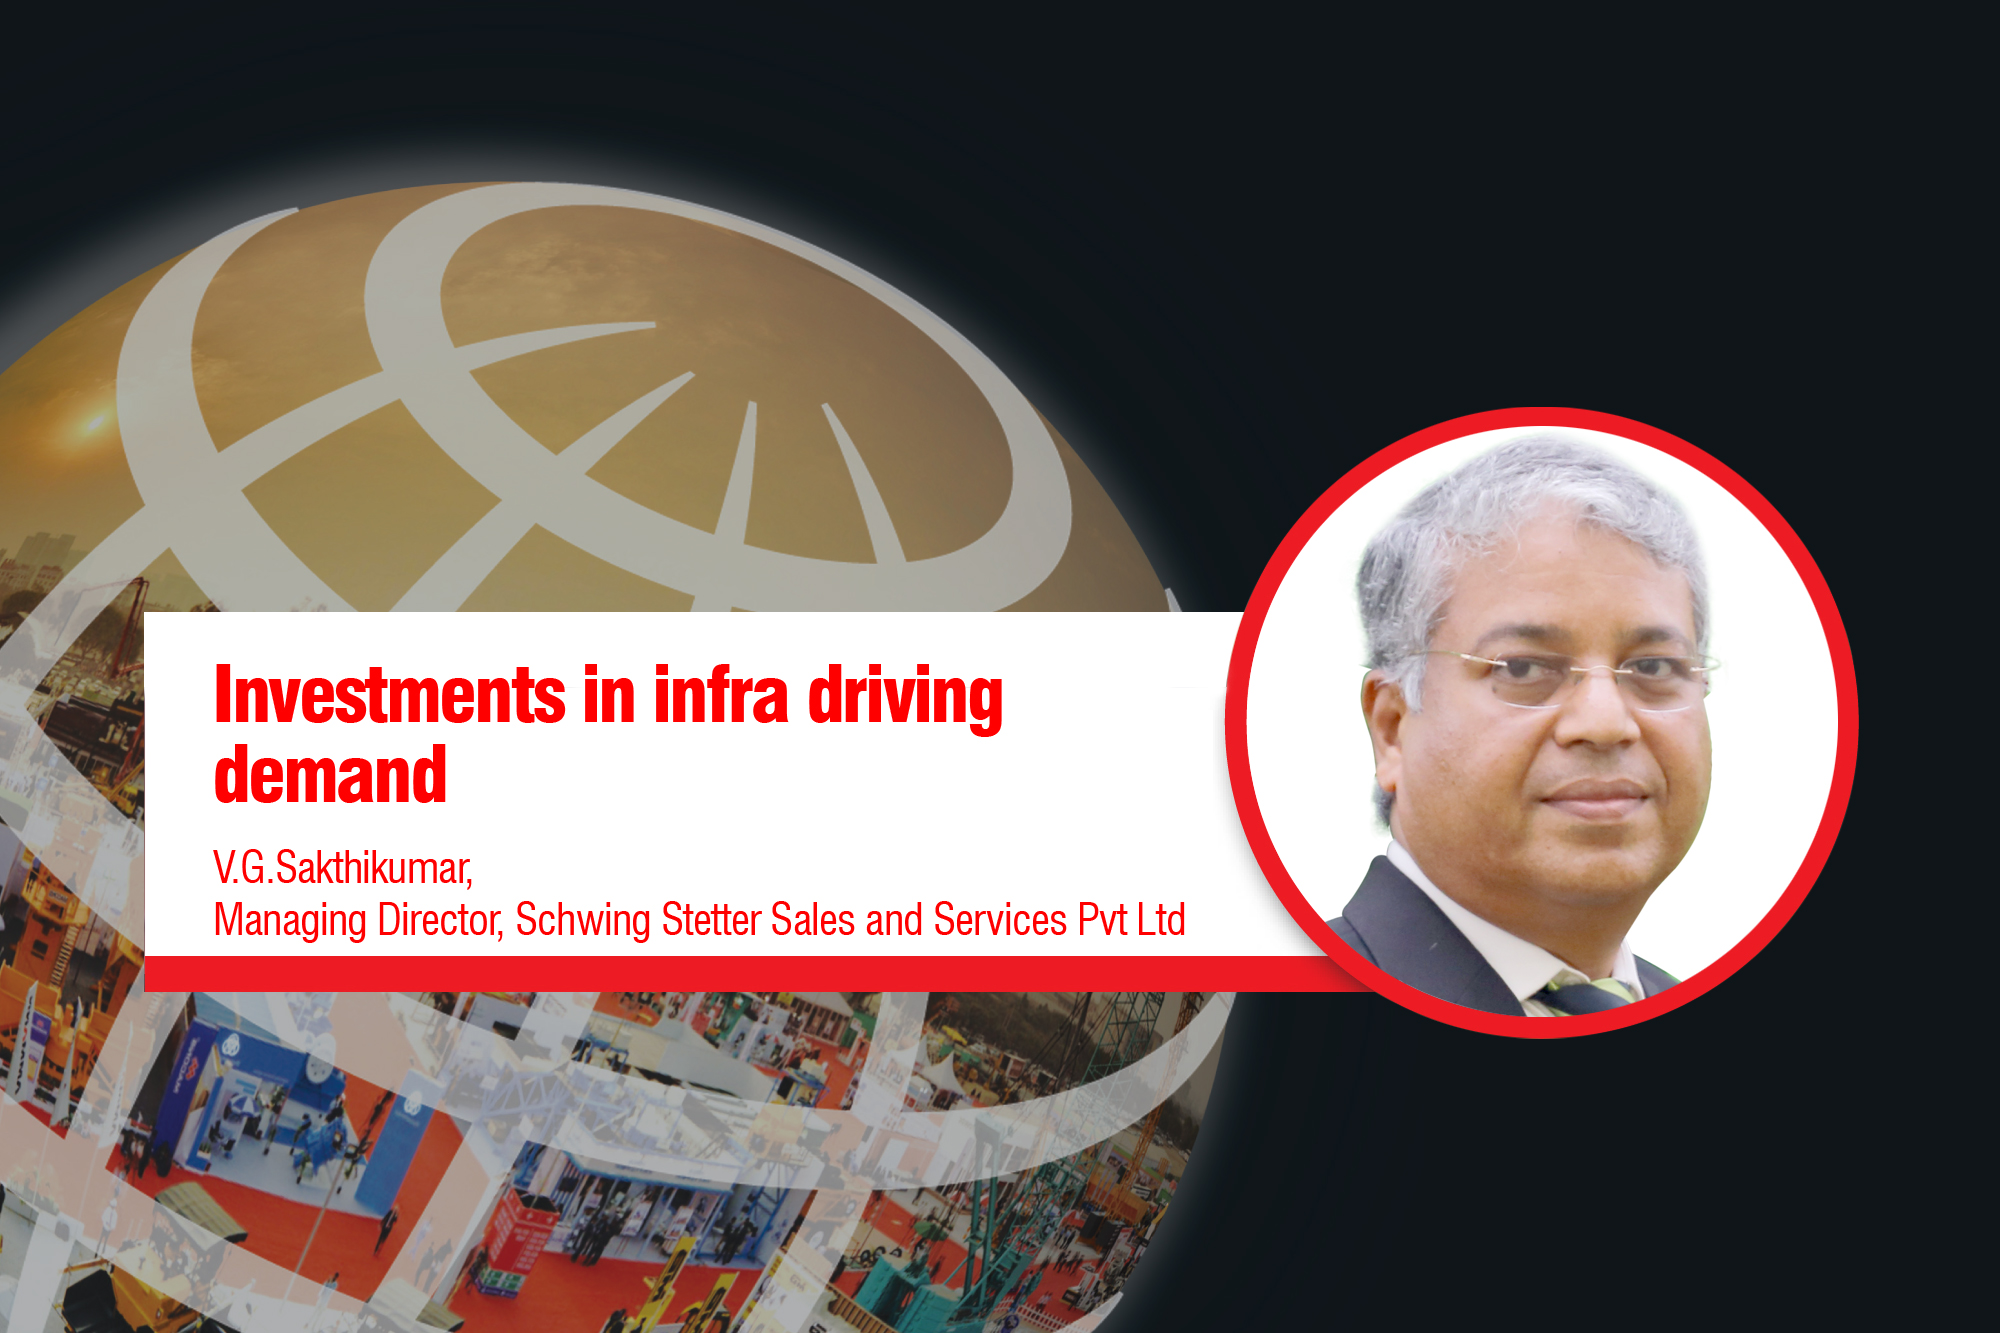 Investments in infra driving demand